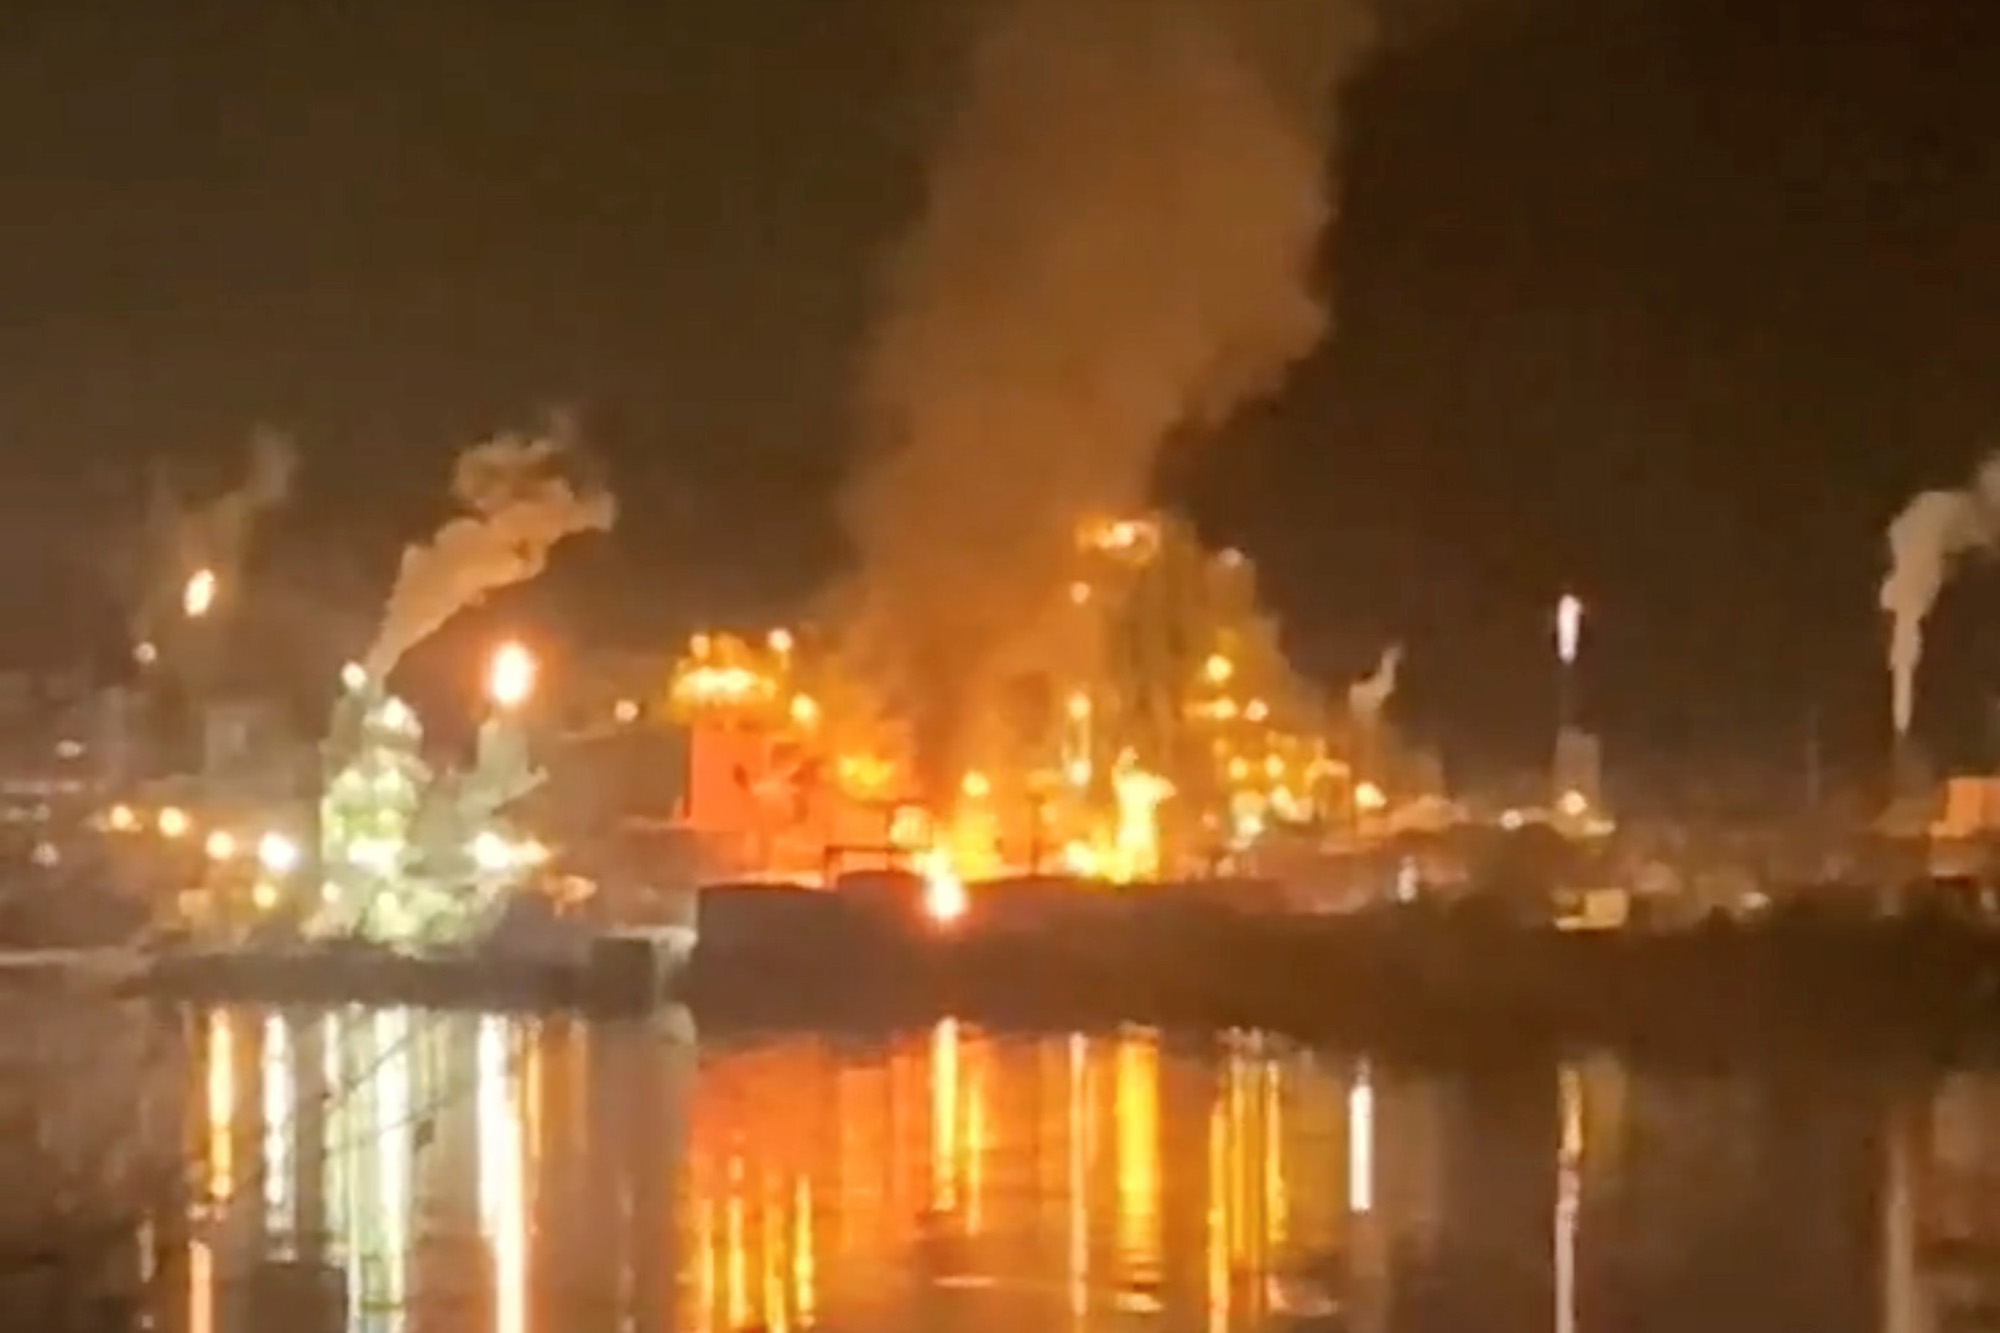 West Virginia area told to shelter-in-place after explosion at chemical plant